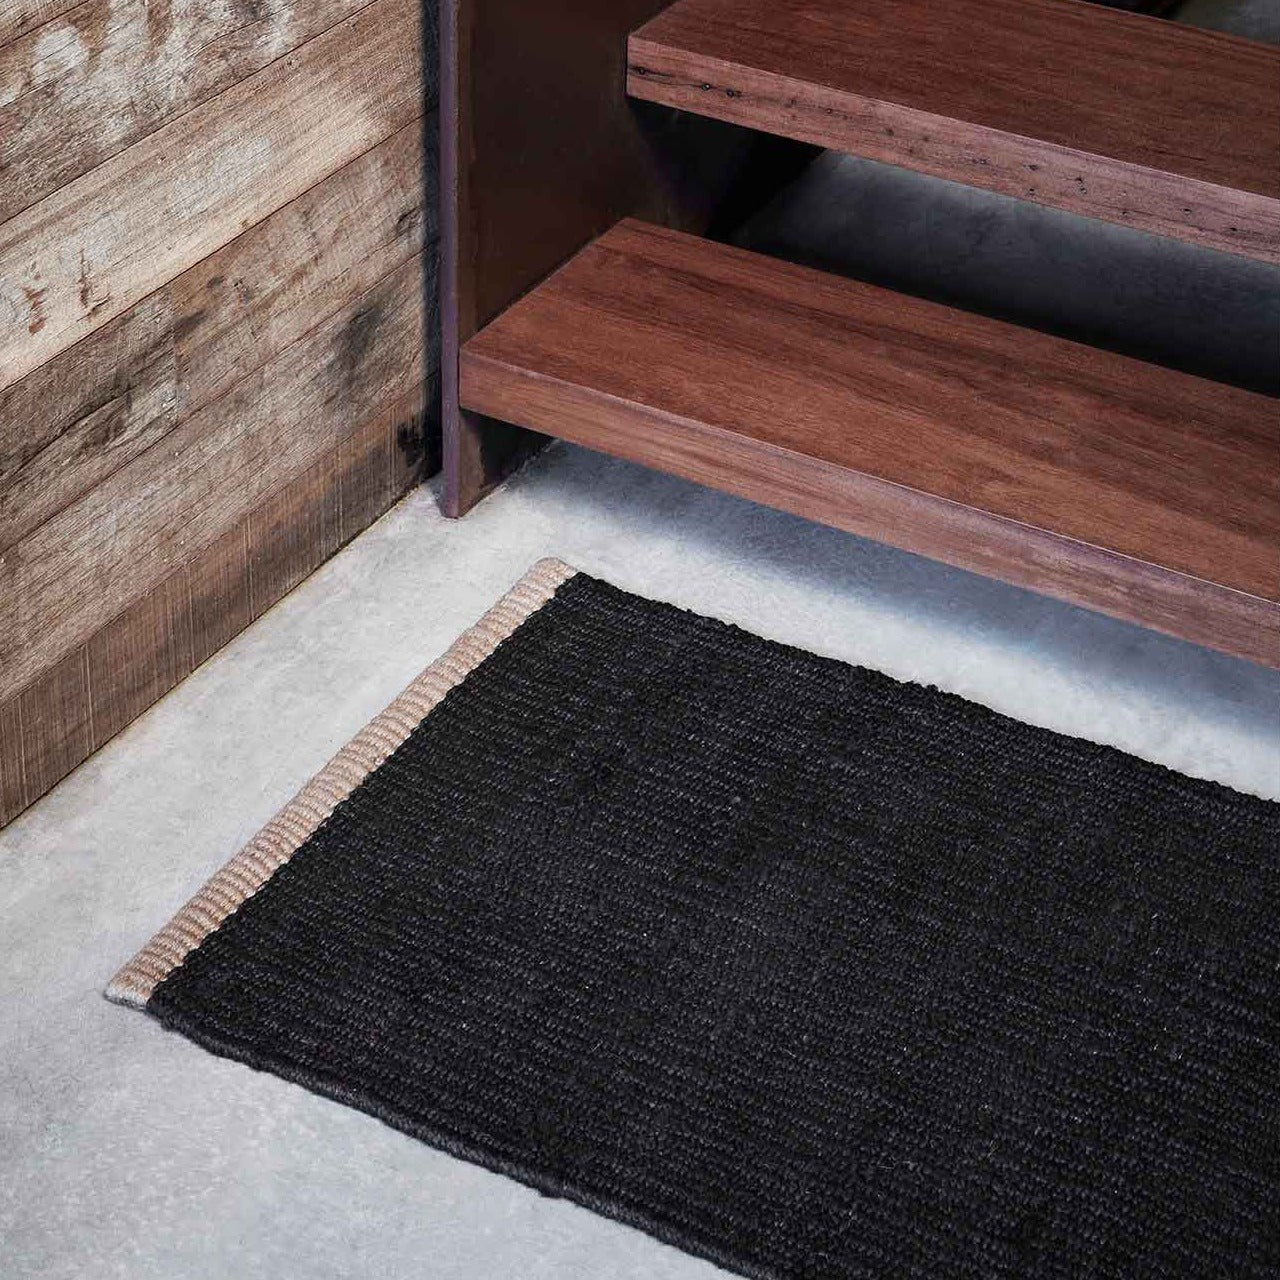 Nest Weave Entrance Mat- Charcoal 0.6 x 1m